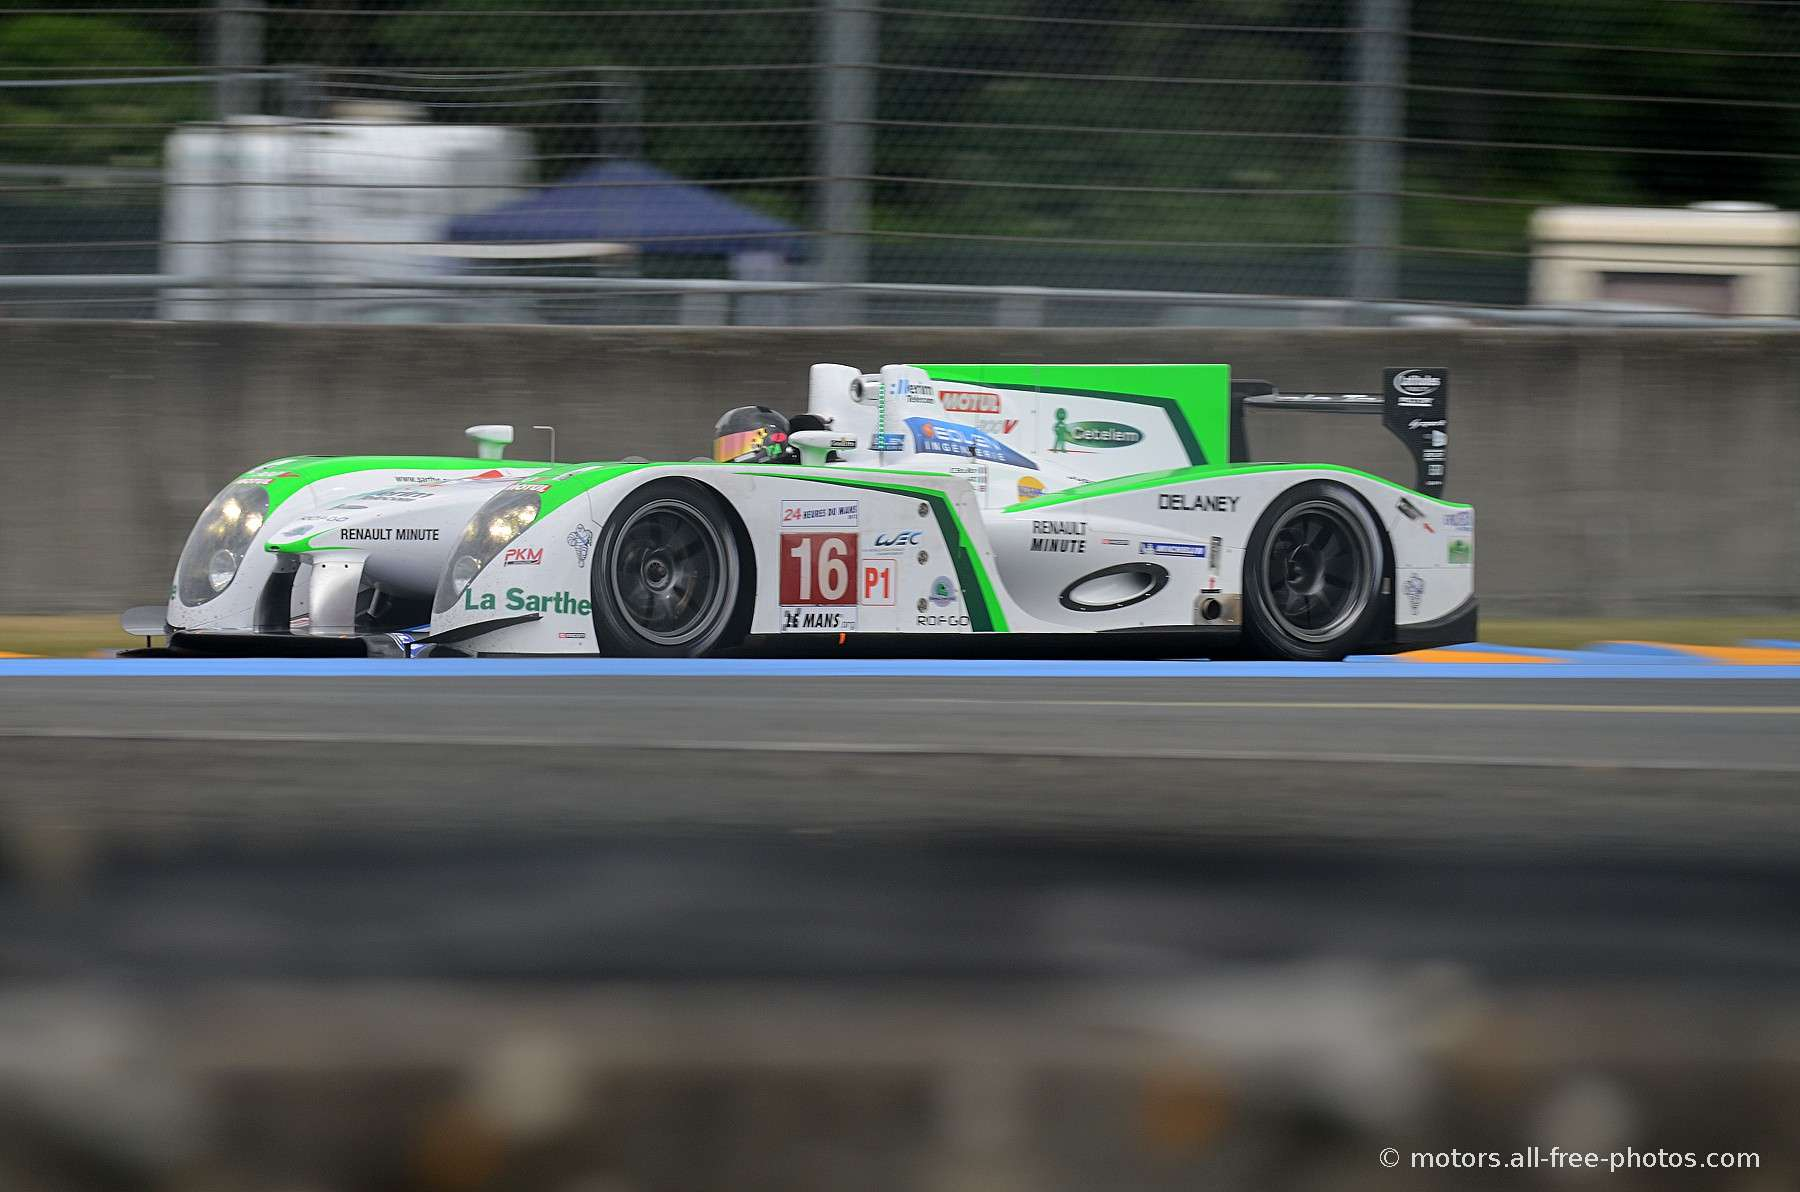 Pescarolo 03-Judd - Team Pescarolo